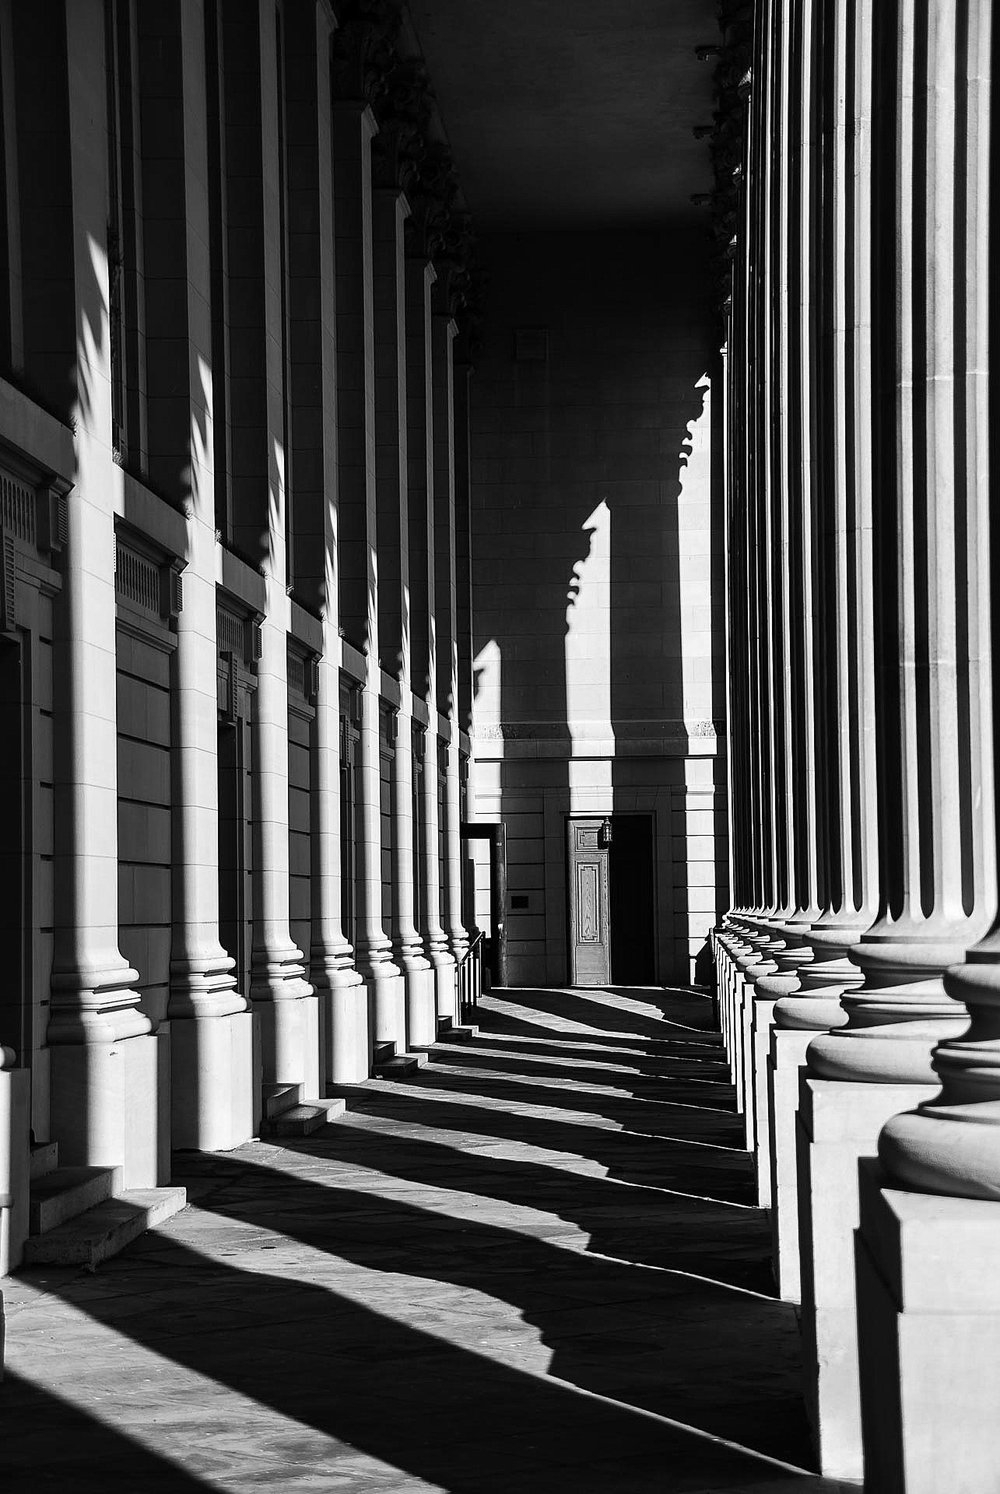 The interplay of light and shadow at Yale University